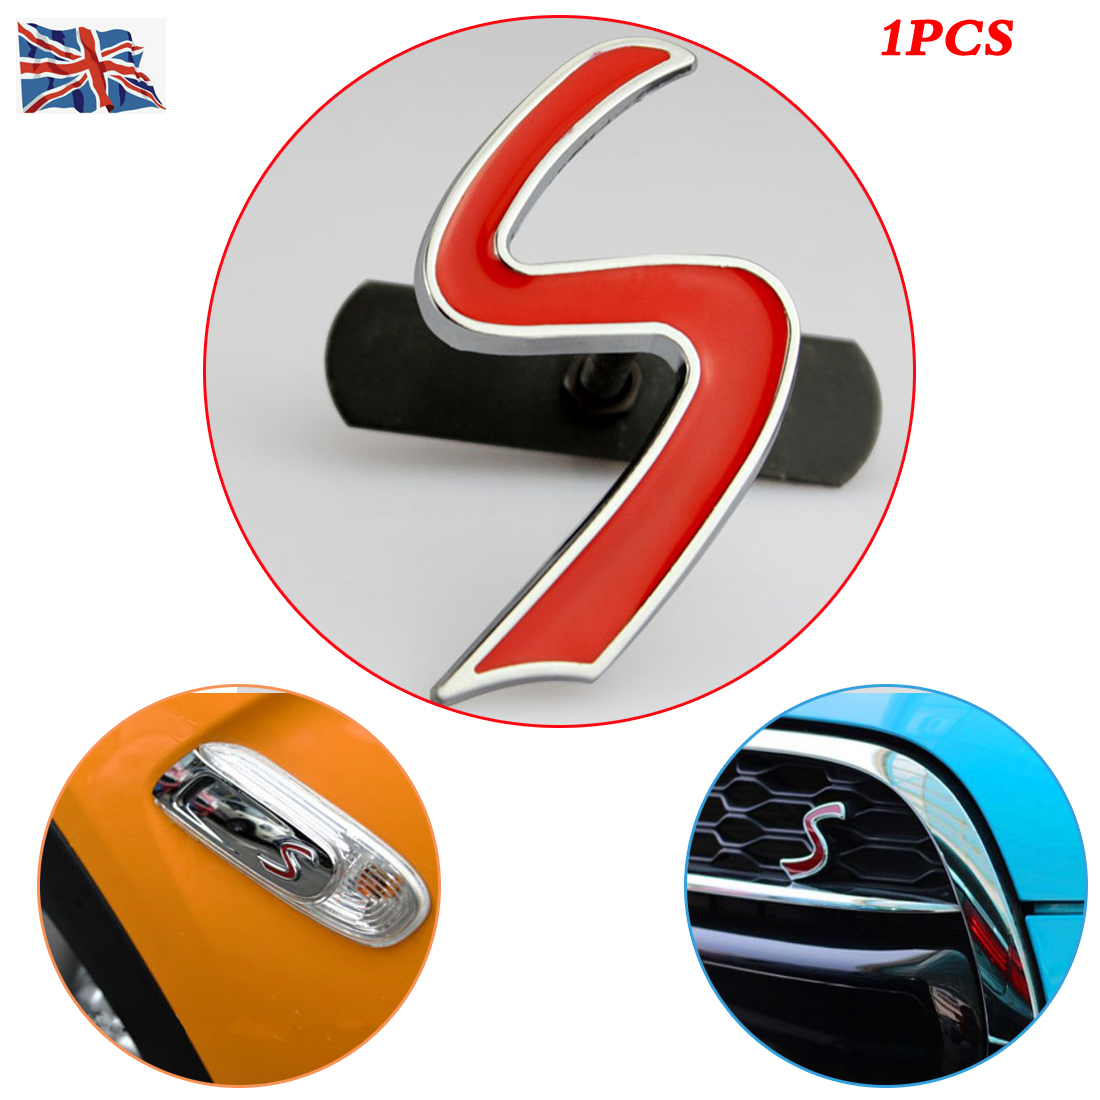 Black Red 1Pcs SPORT Metal Hood Front Grille Badge Emblem Replacement For Universal Cars